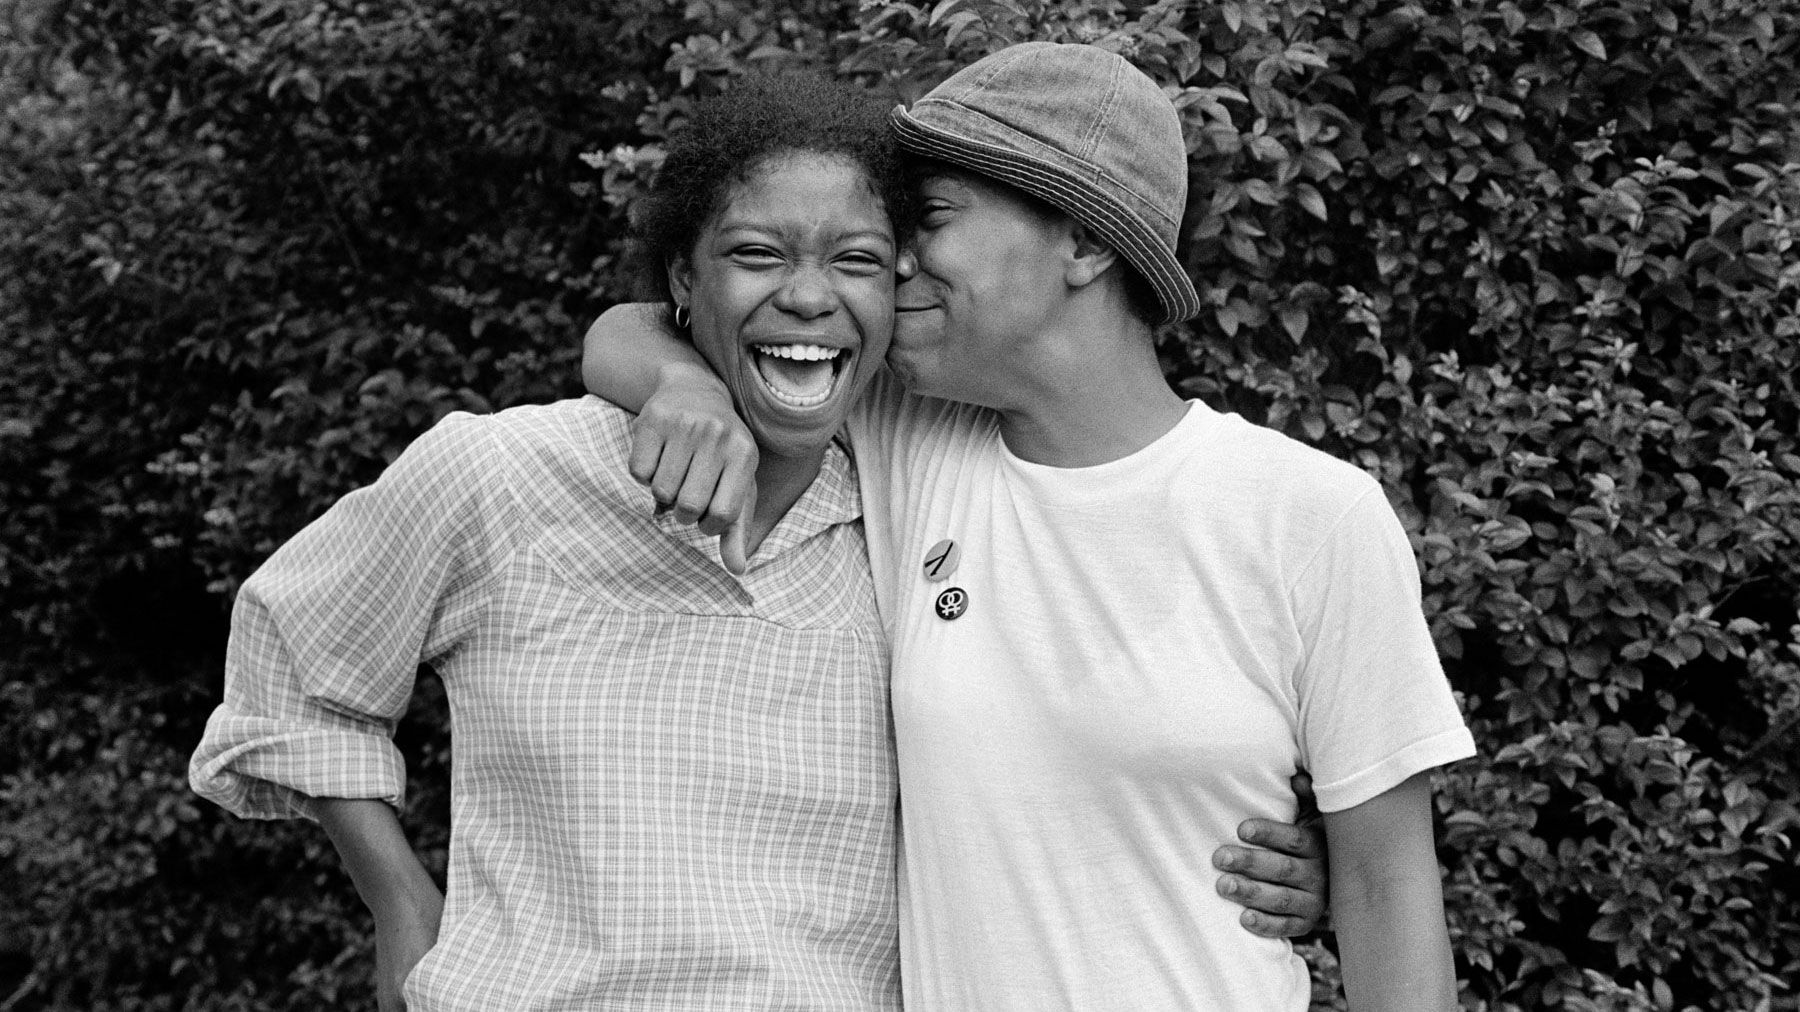 Black and white image of two women embracing and smiling